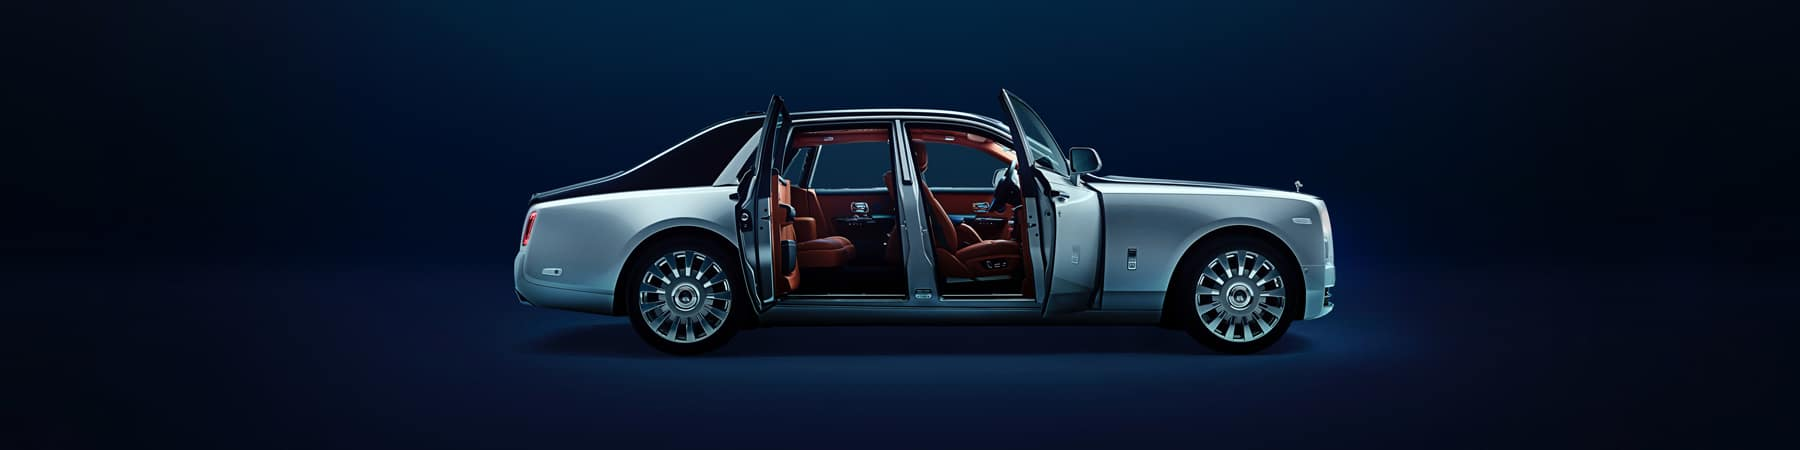 New Rolls-Royce Phantom for Sale in Charleston, SC